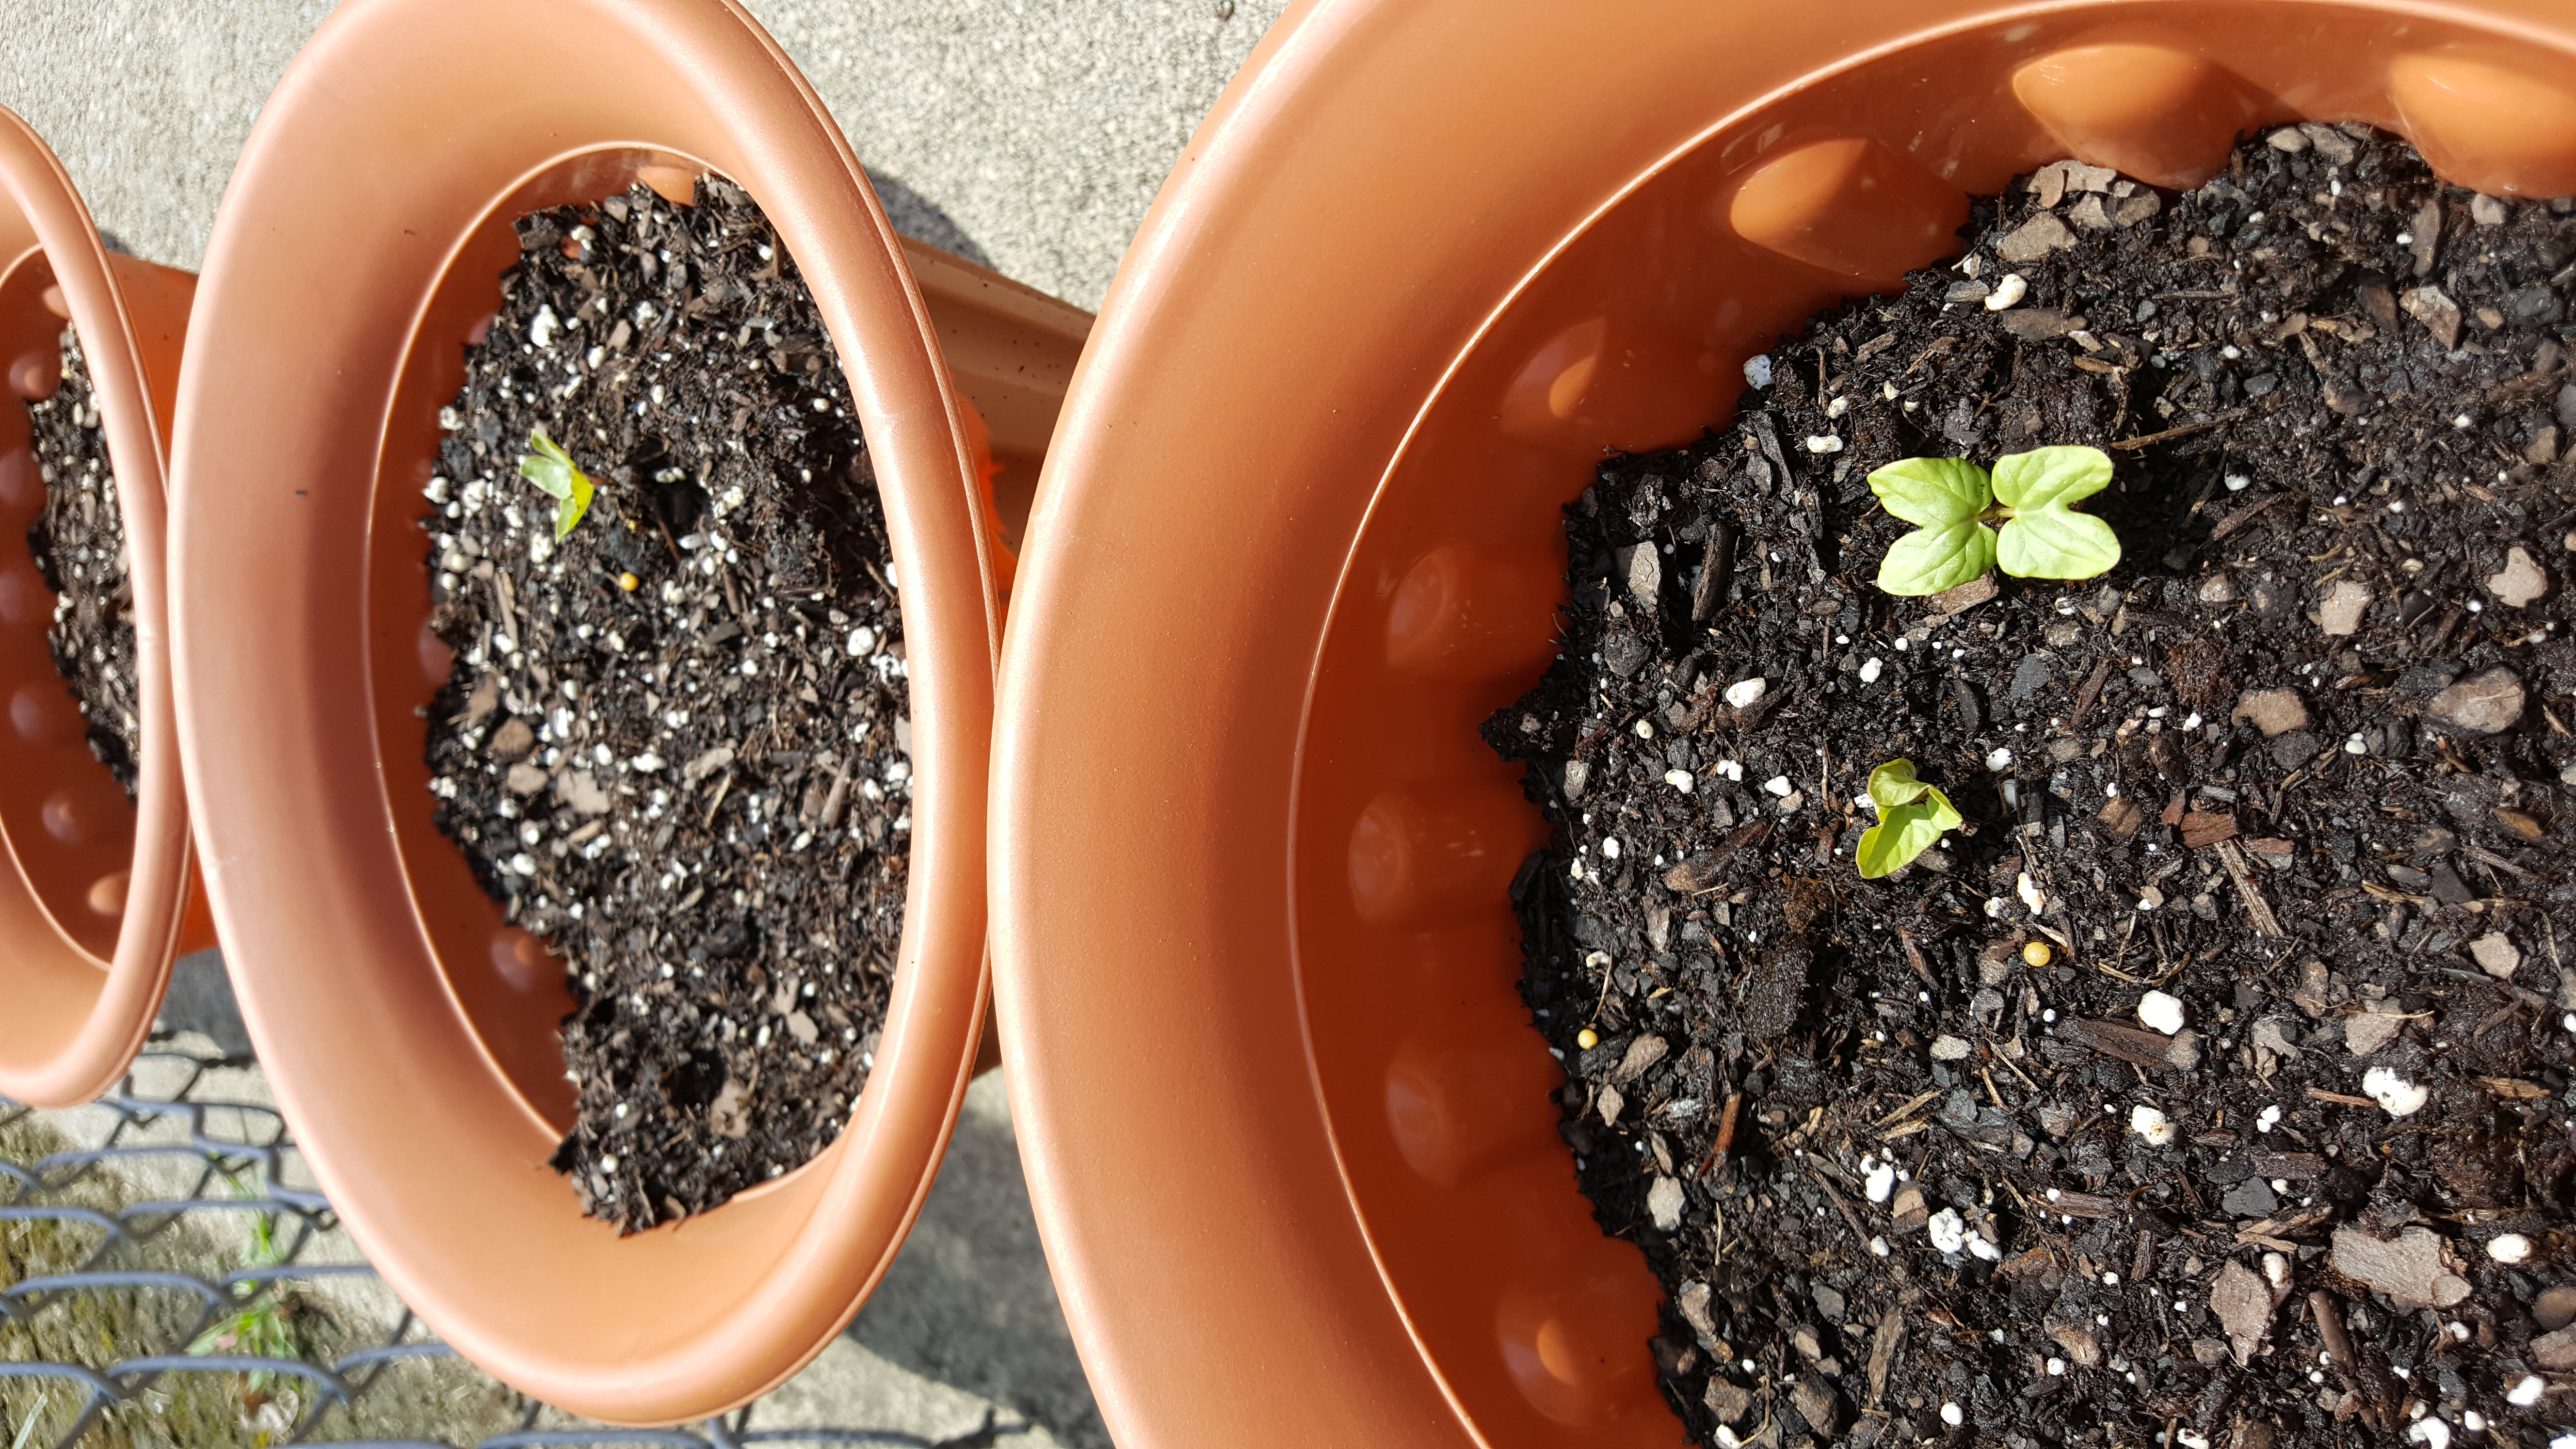 Sprouts after only three days